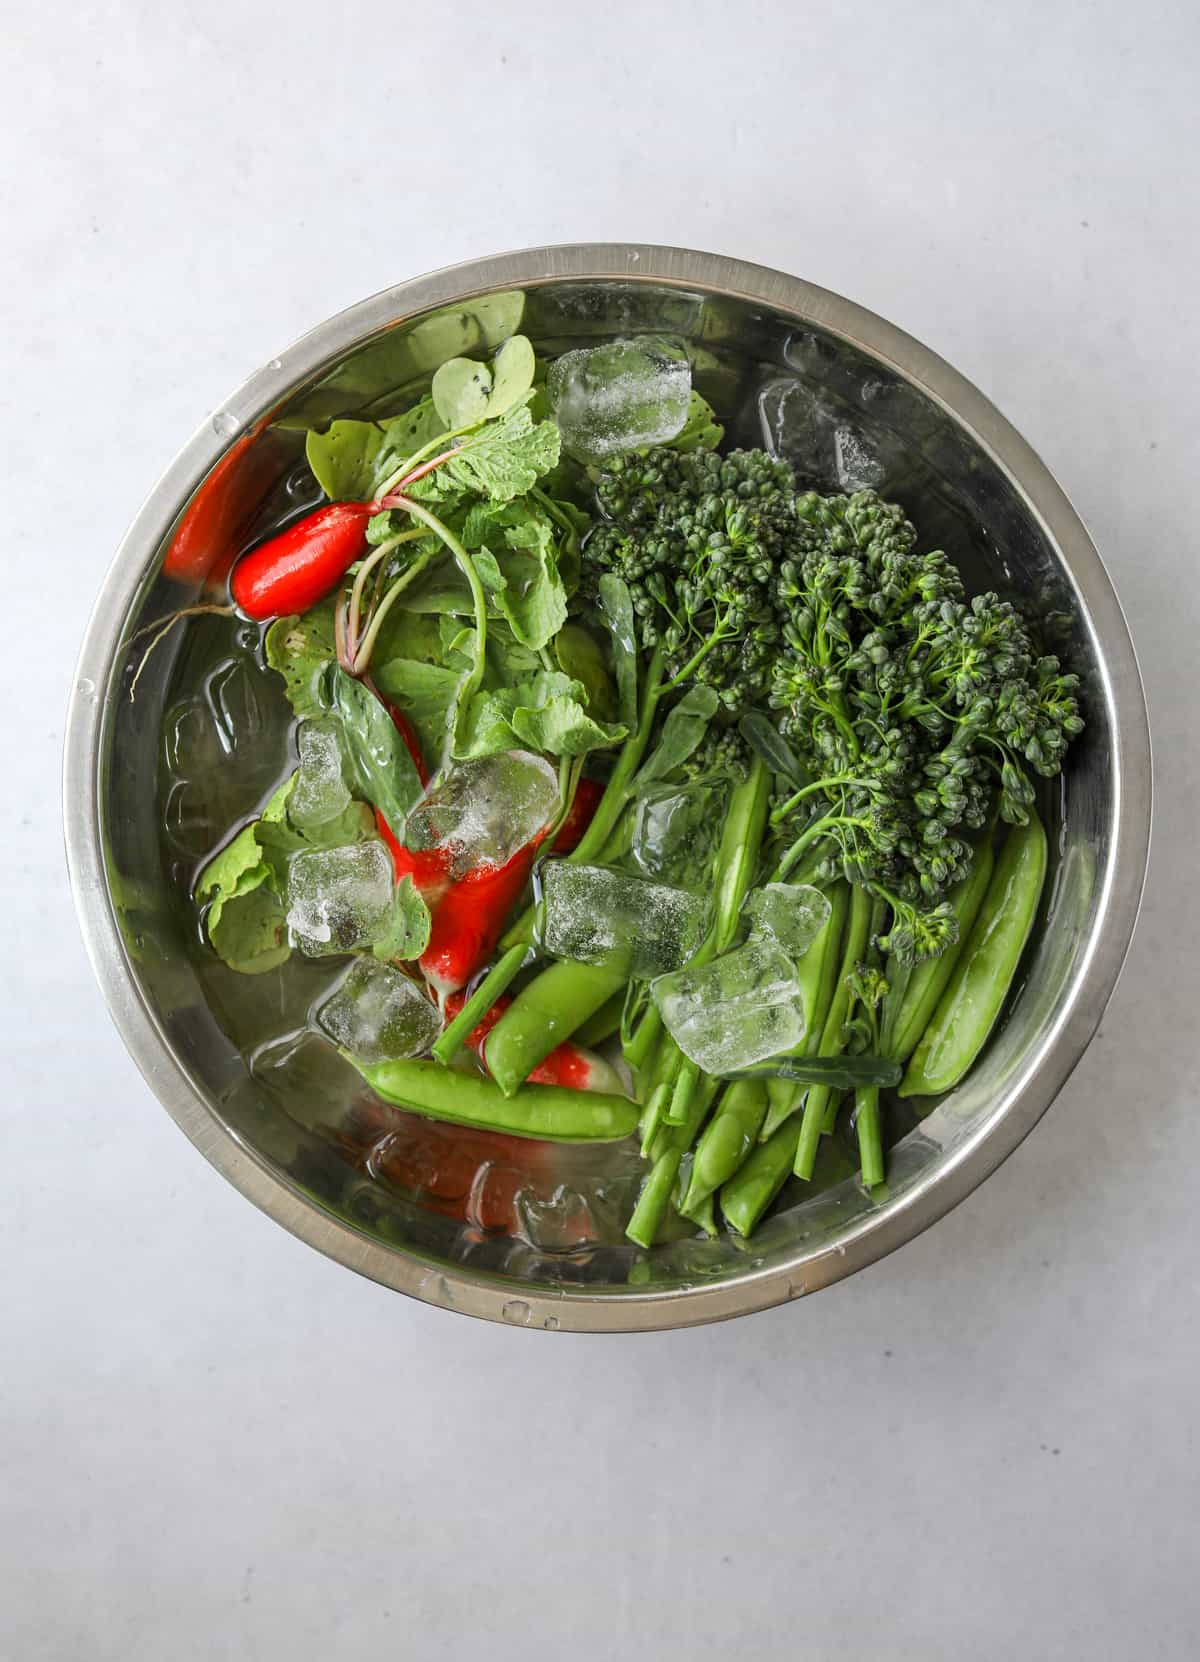 a stainless steel mixing bowl filled with ice water, broccolini, snap peas and radish